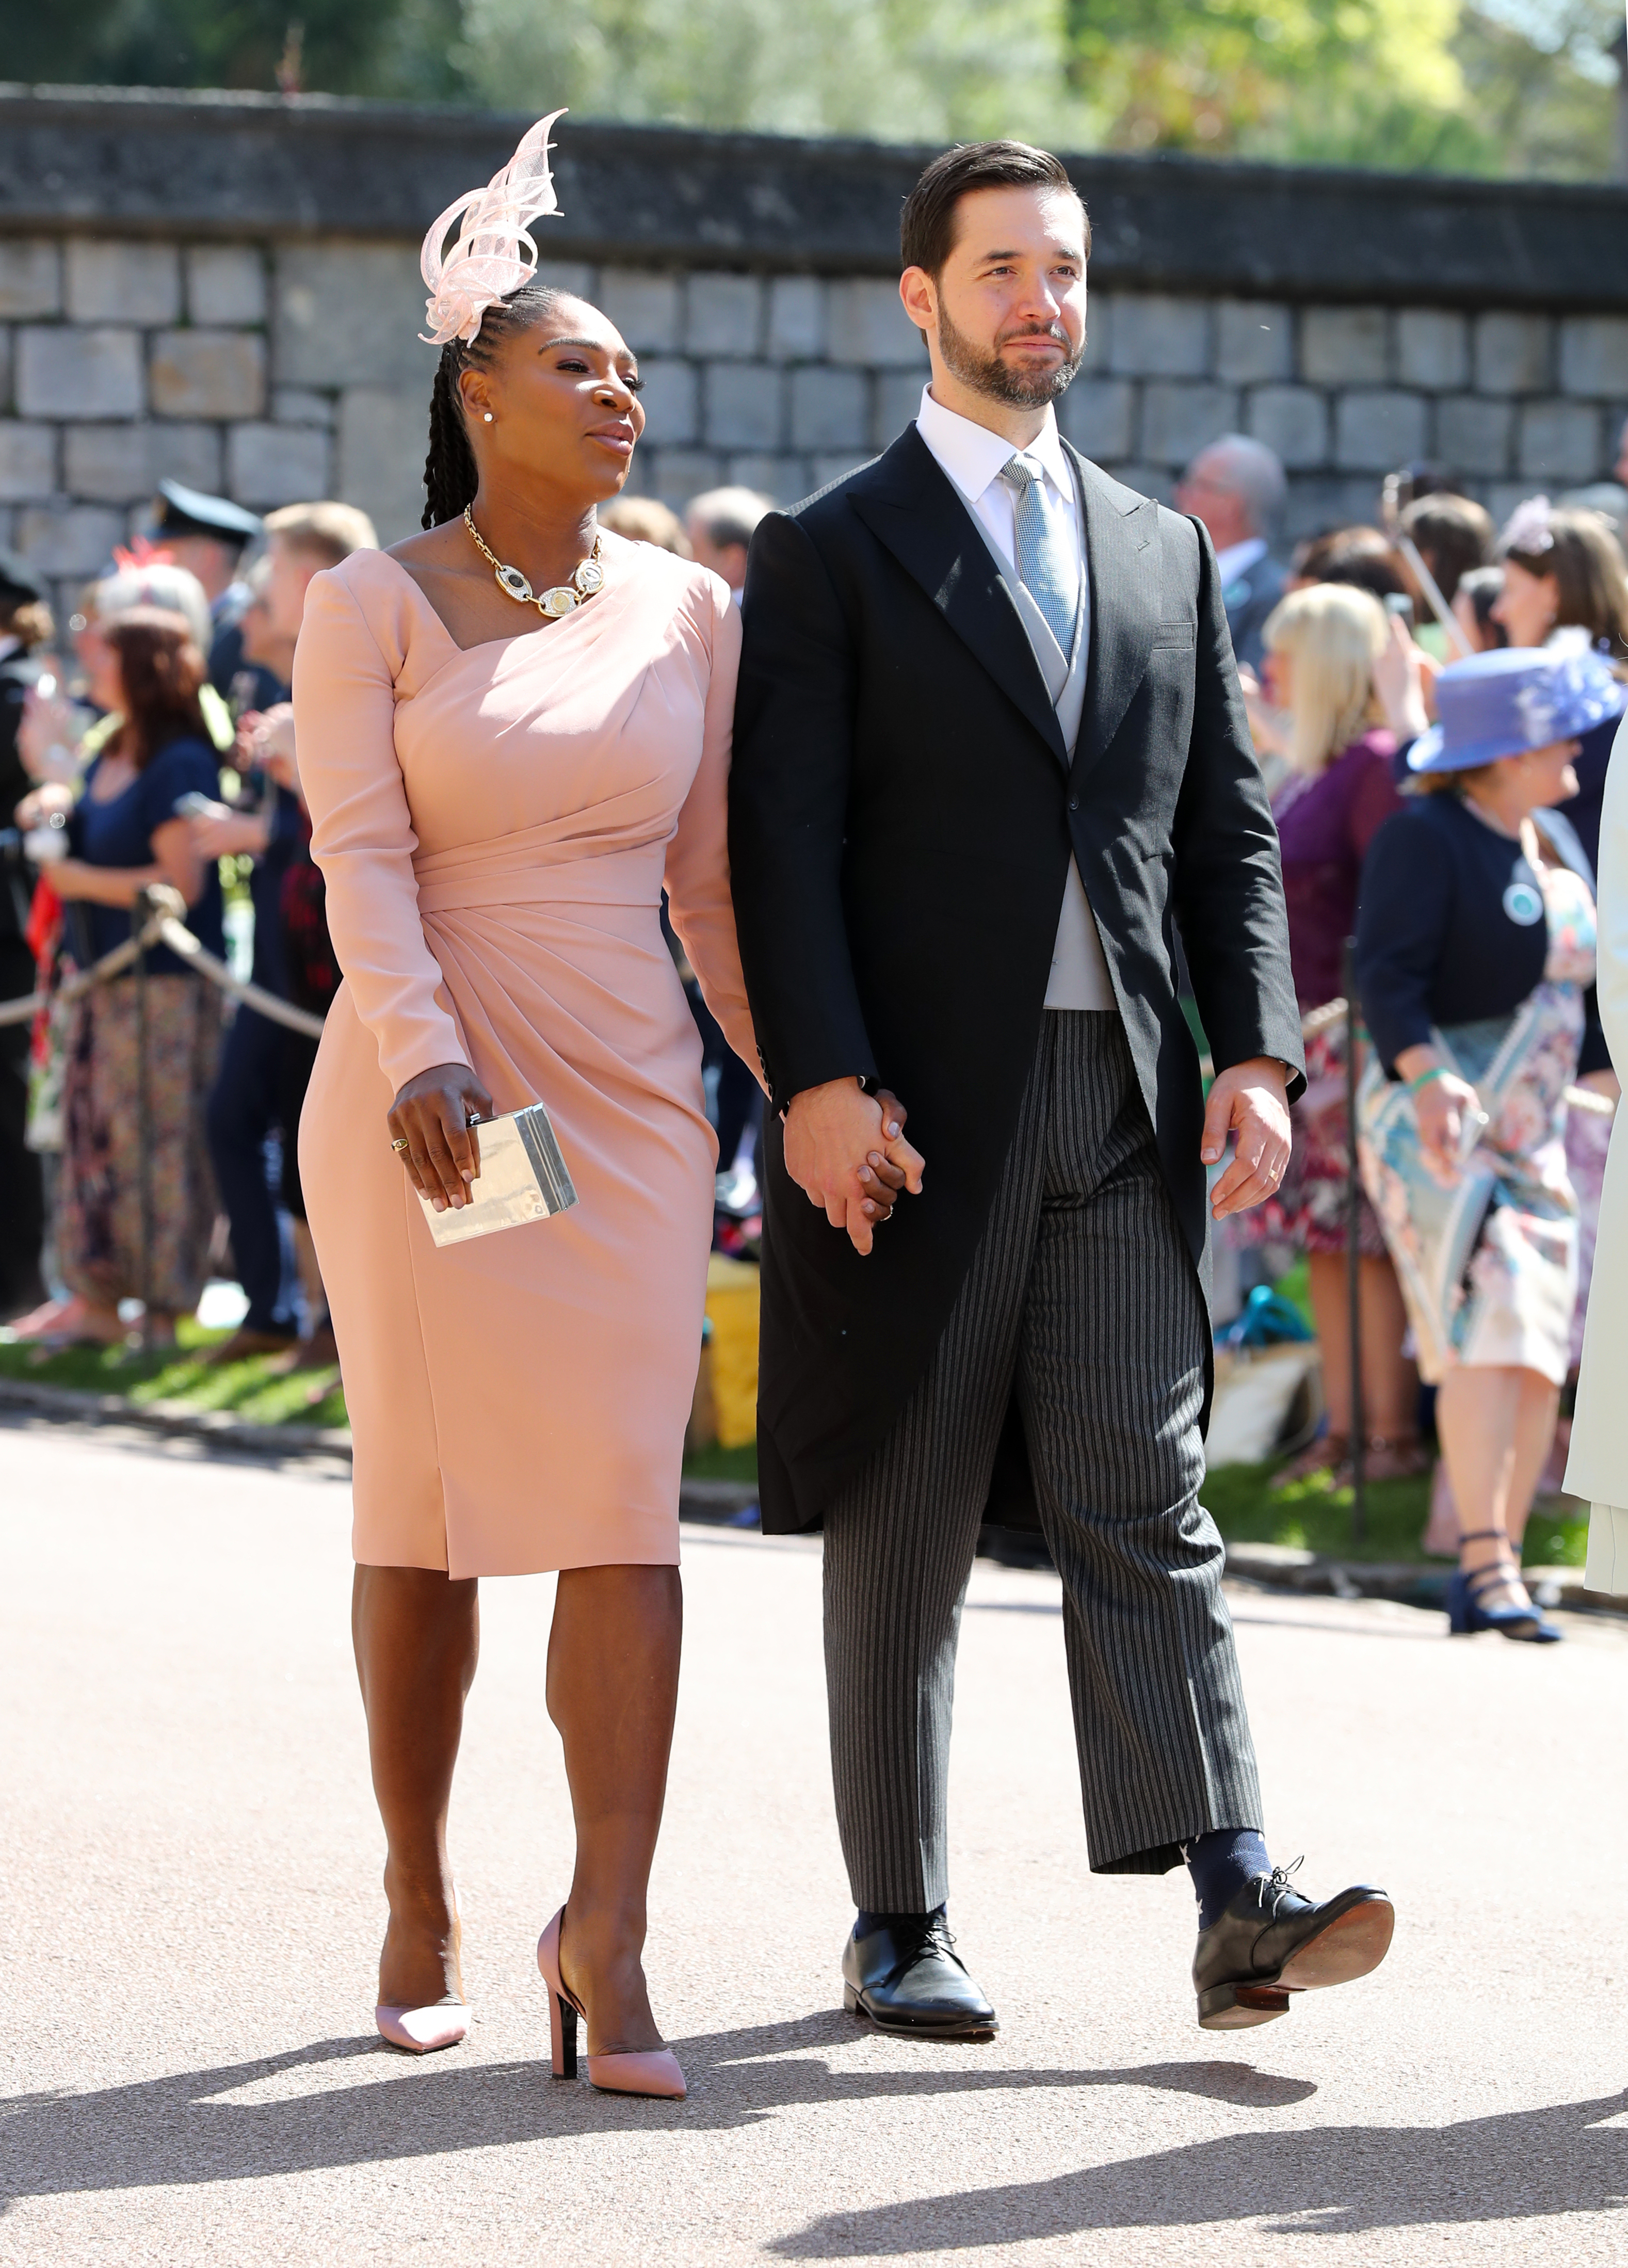 Williams and her husband Alexis Ohanian